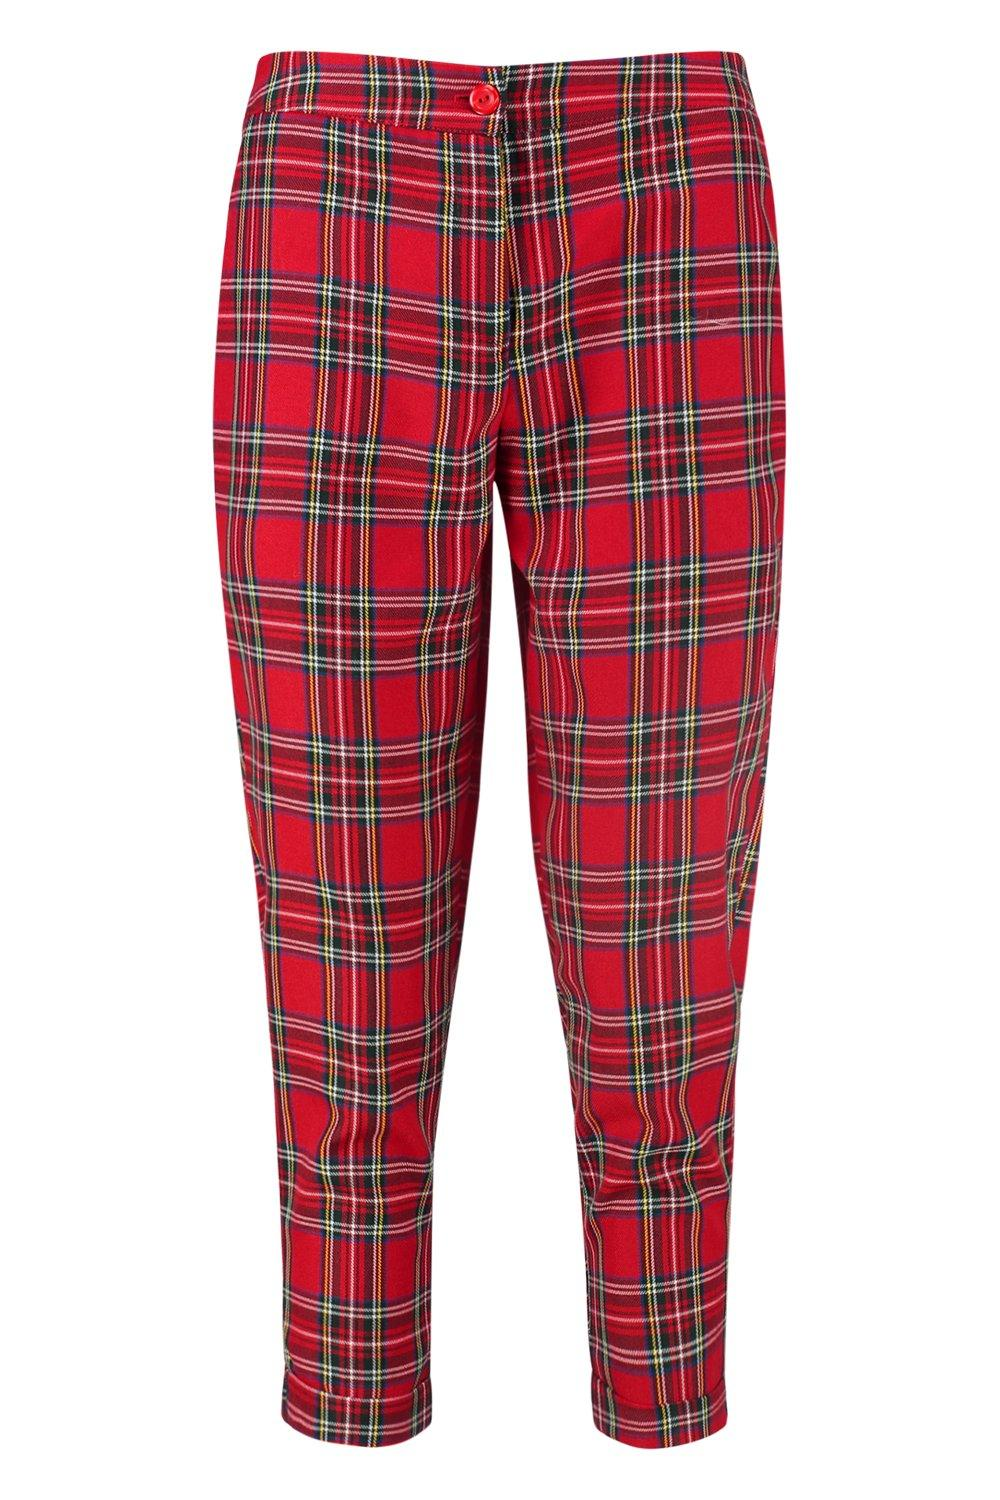 Petite Check Trouser Trouser Trouser Tapered red Tapered Petite Check Petite red Tapered Check Rprqdp